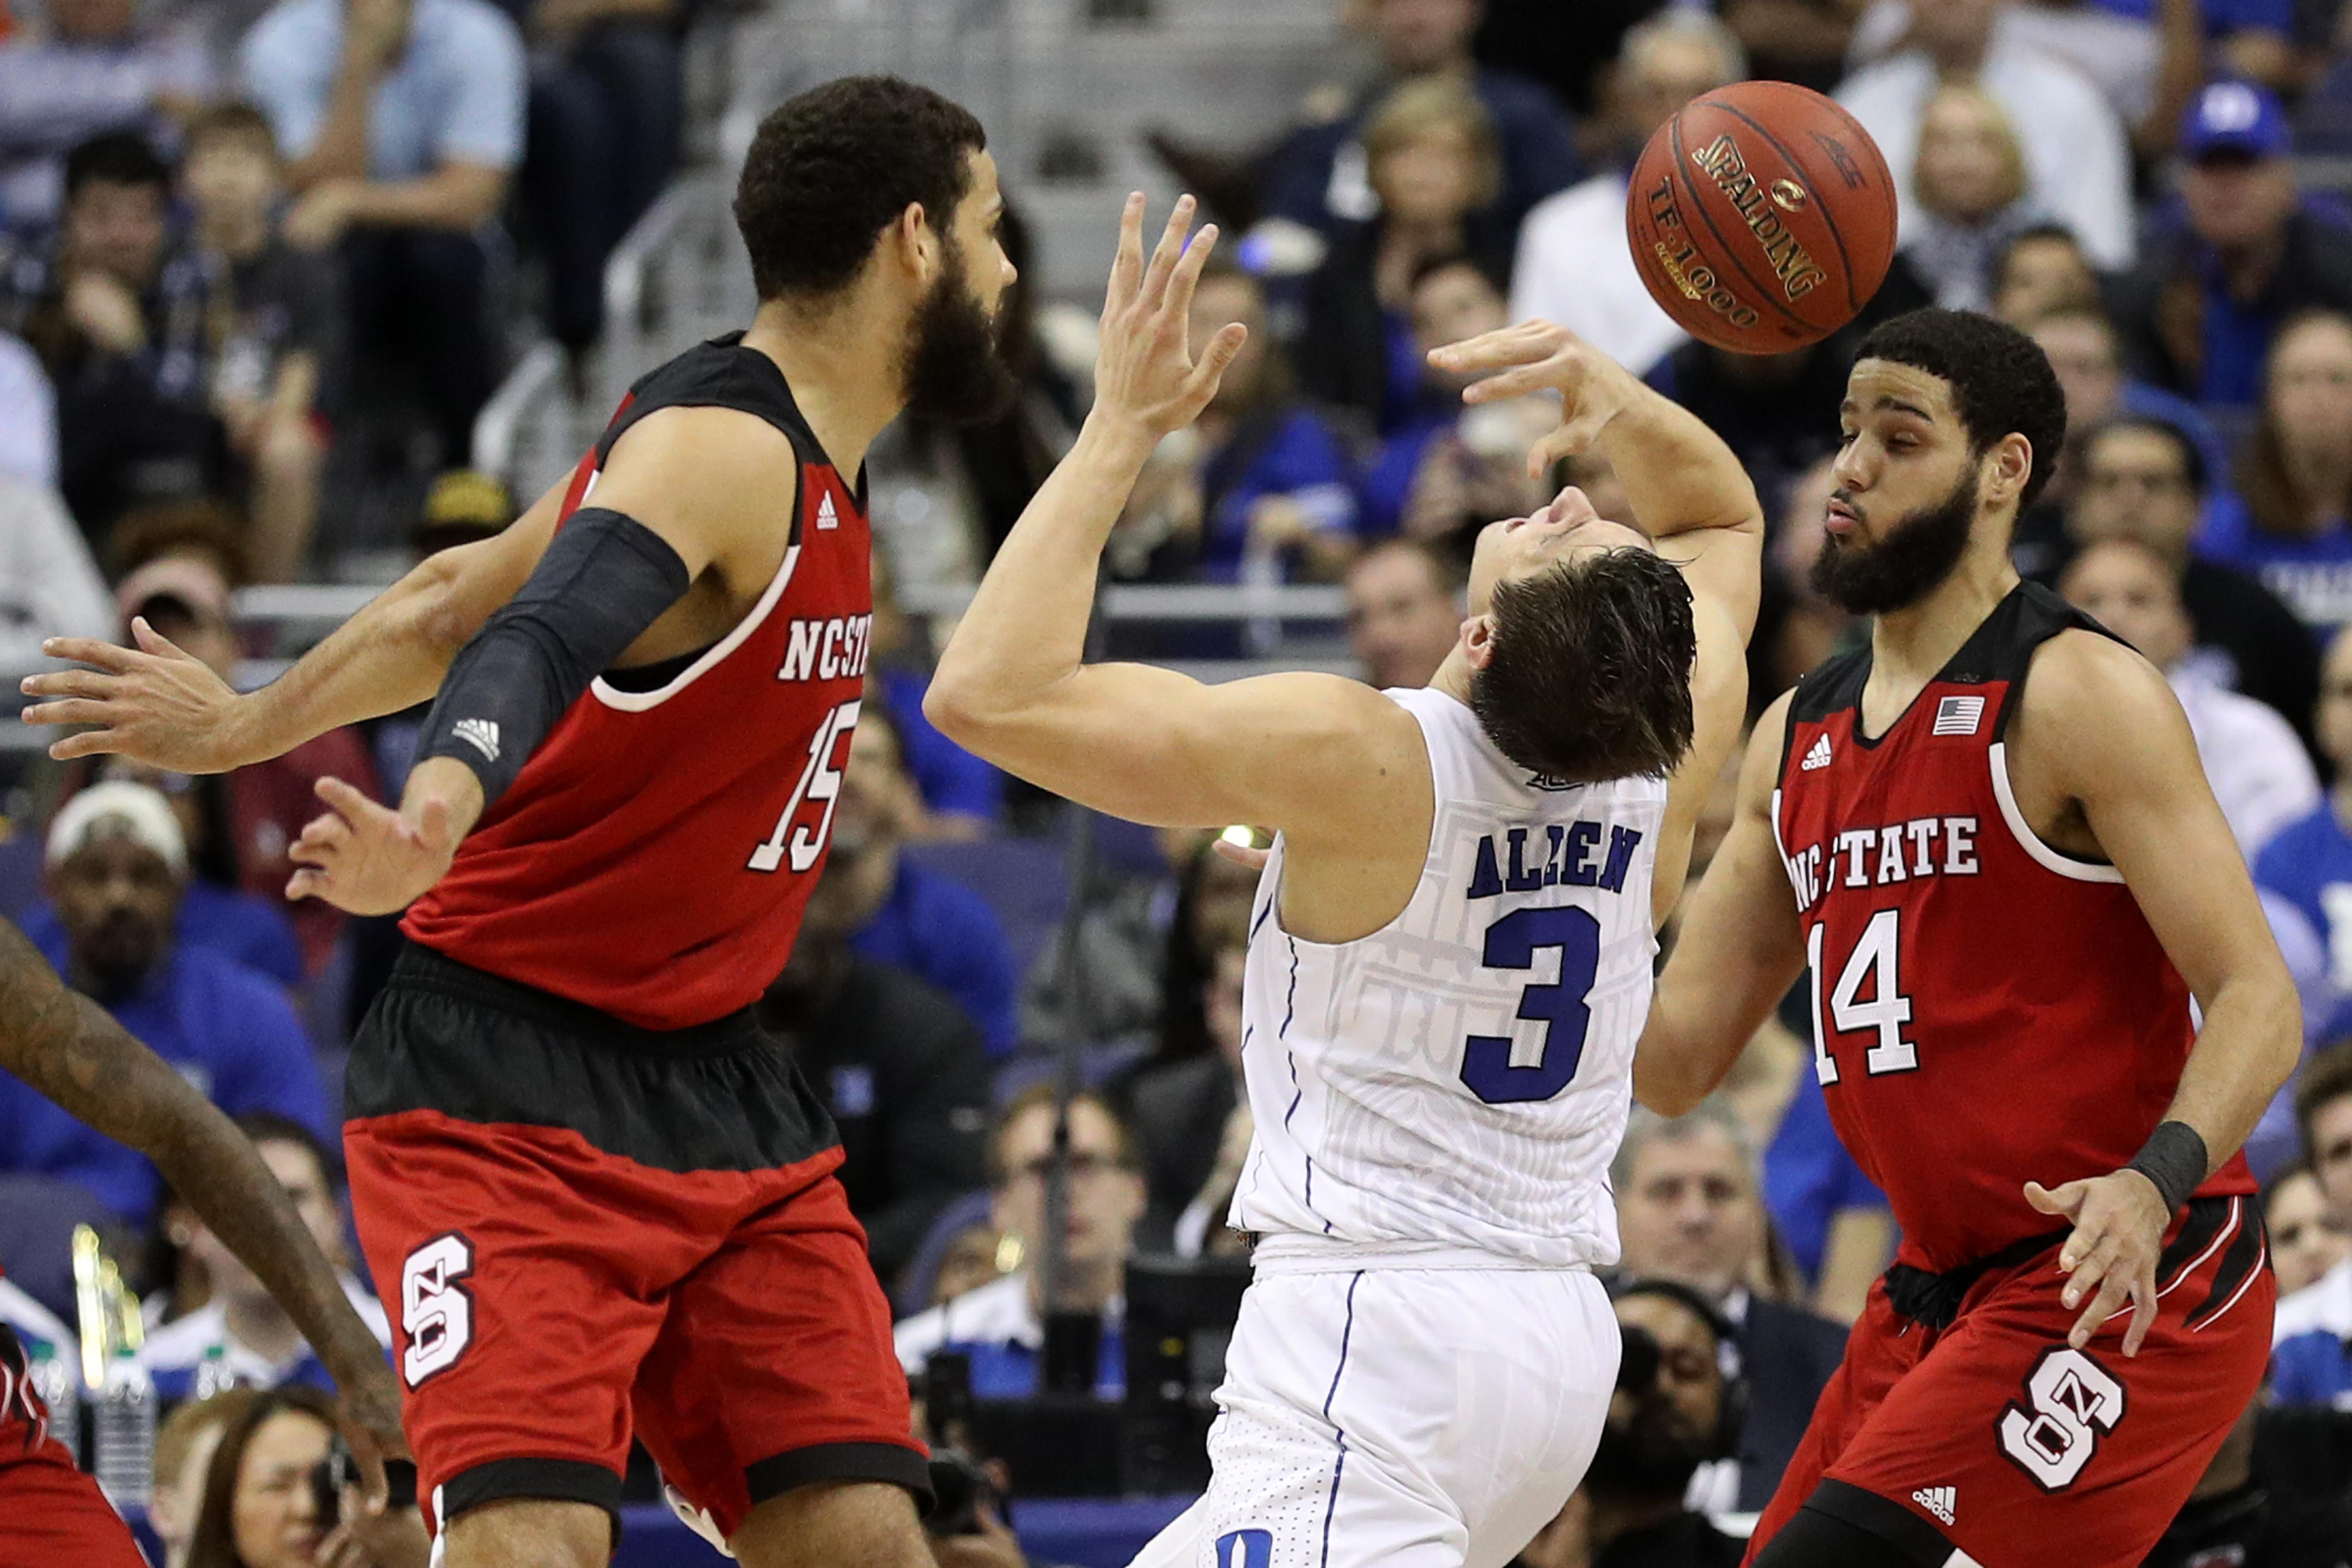 WASHINGTON, DC - MARCH 09: Grayson Allen #3 of the Duke Blue Devils looses poession of the ball as he dribbles between Cody Martin #15 and Caleb Martin #14 of the North Carolina State Wolfpack during the second half in the second round of the 2016 ACC Basketball Tournament at Verizon Center on March 9, 2016 in Washington, DC. The Duke Blue Devils won, 92-89. (Photo by Patrick Smith/Getty Images)